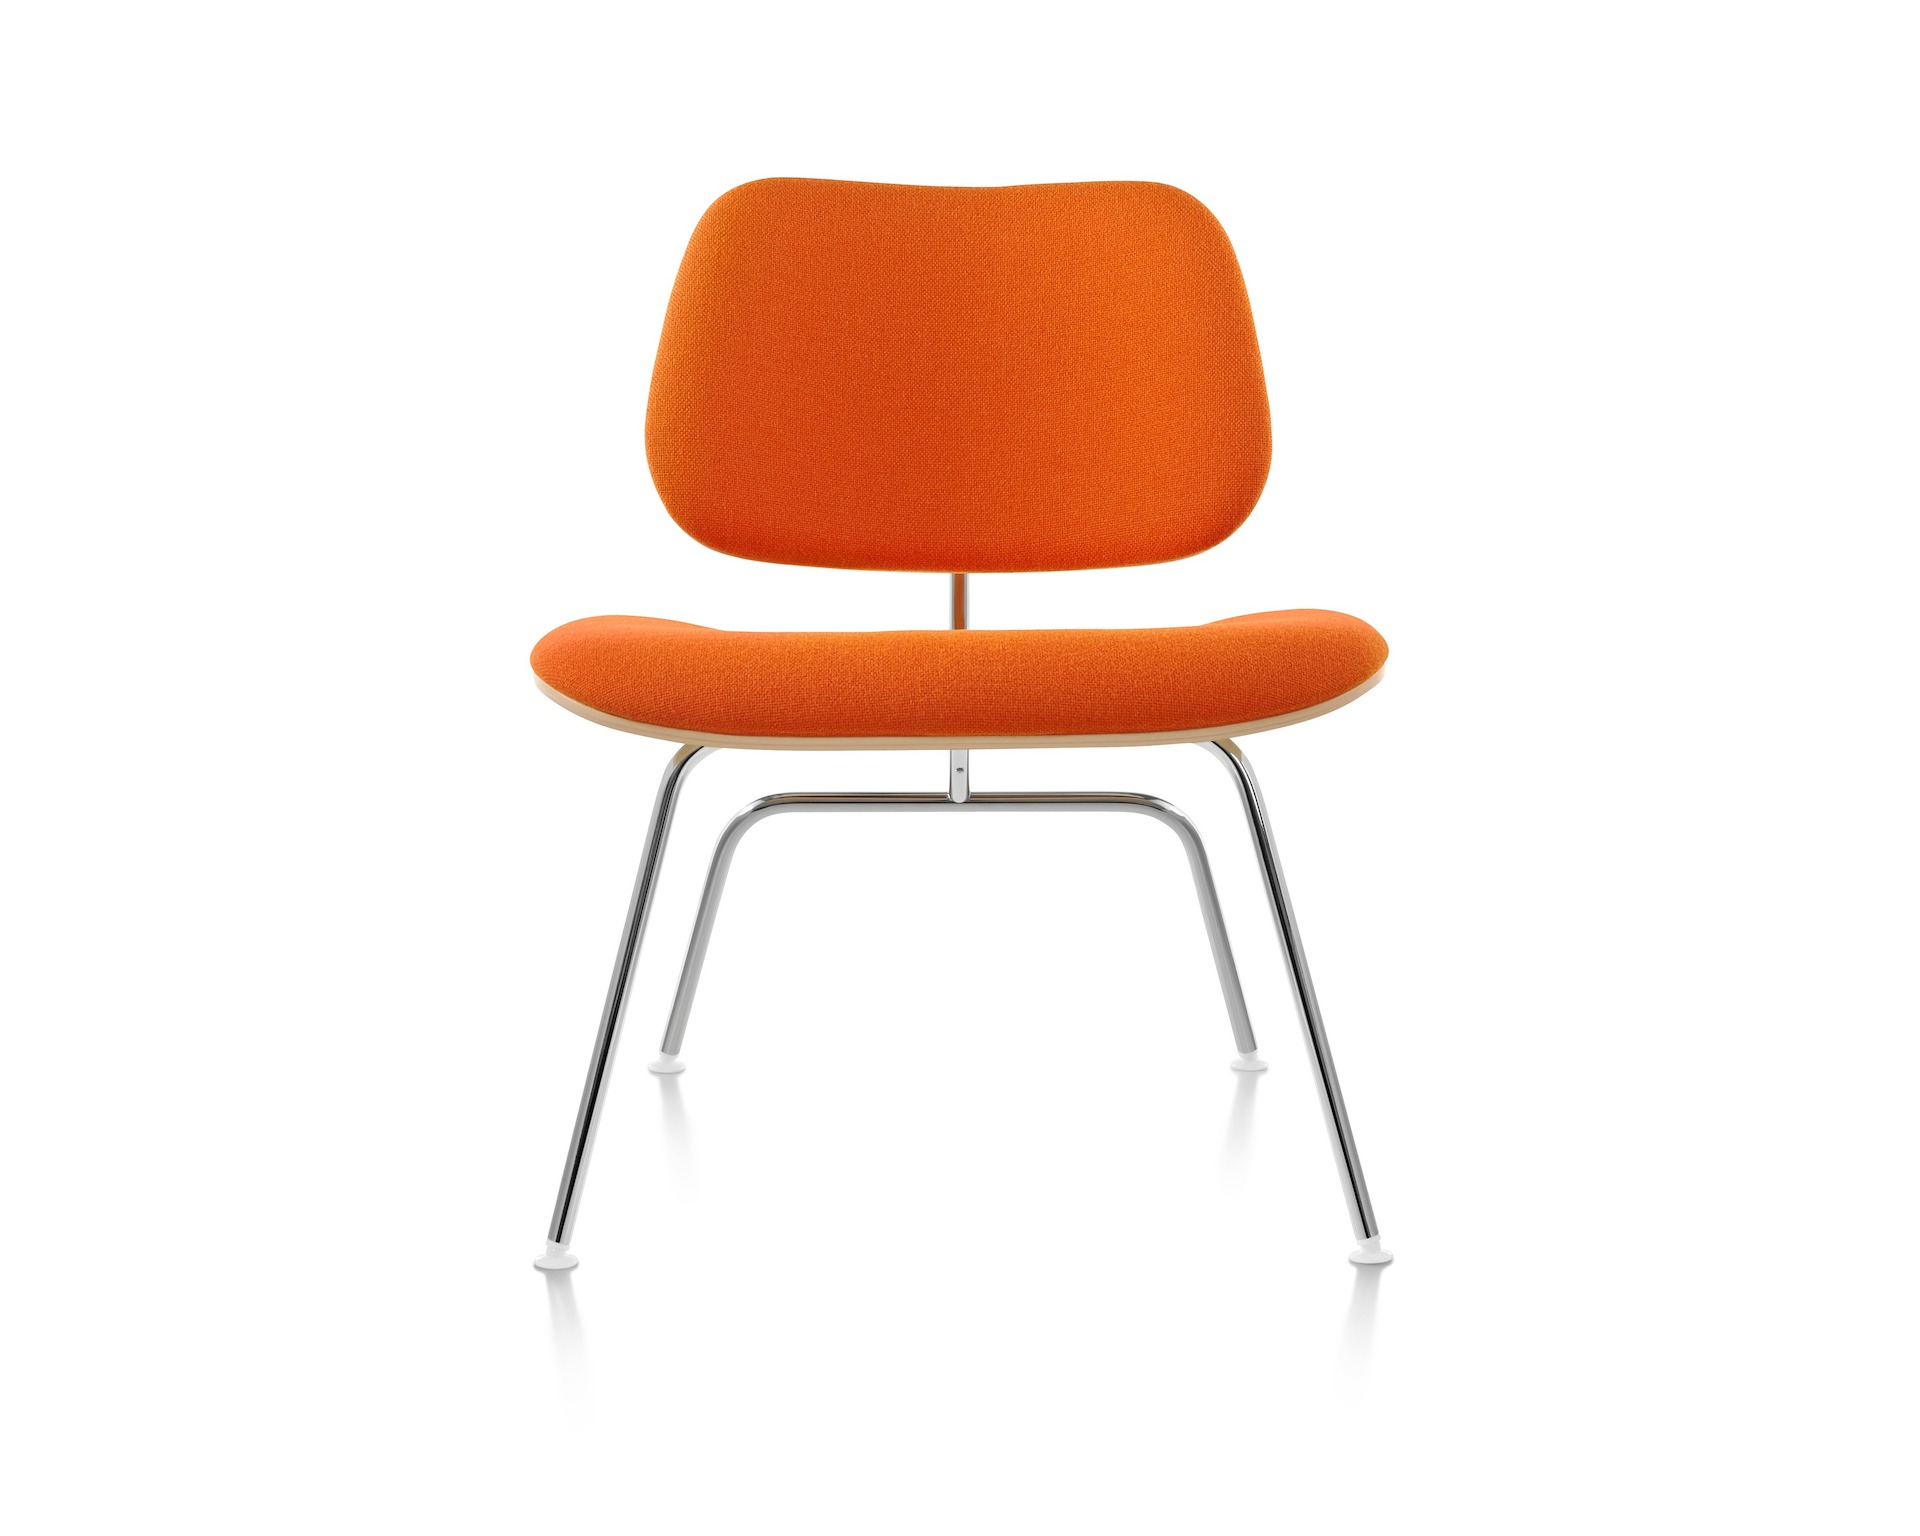 Eames Molded Plywood Lounge Chair, Upholstered